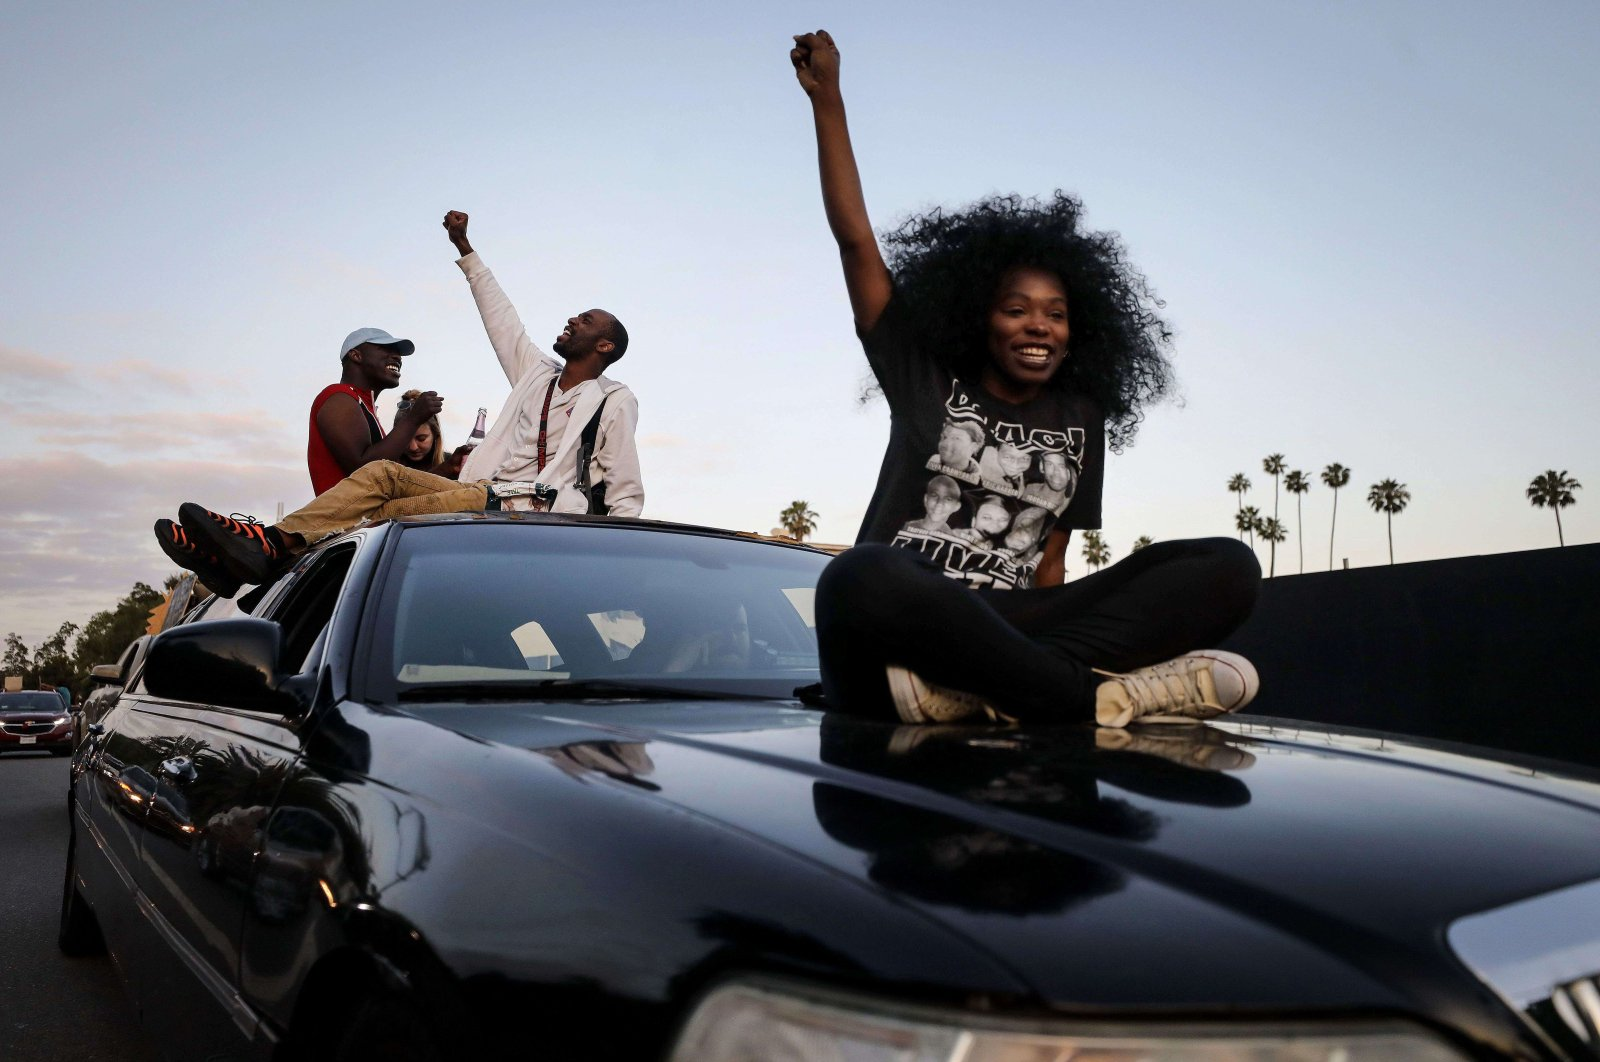 Protesters ride atop a limousine in a march toward Hollywood Boulevard during a peaceful demonstration against racism and police brutality, Los Angeles, California, June 6, 2020. (AFP Photo)